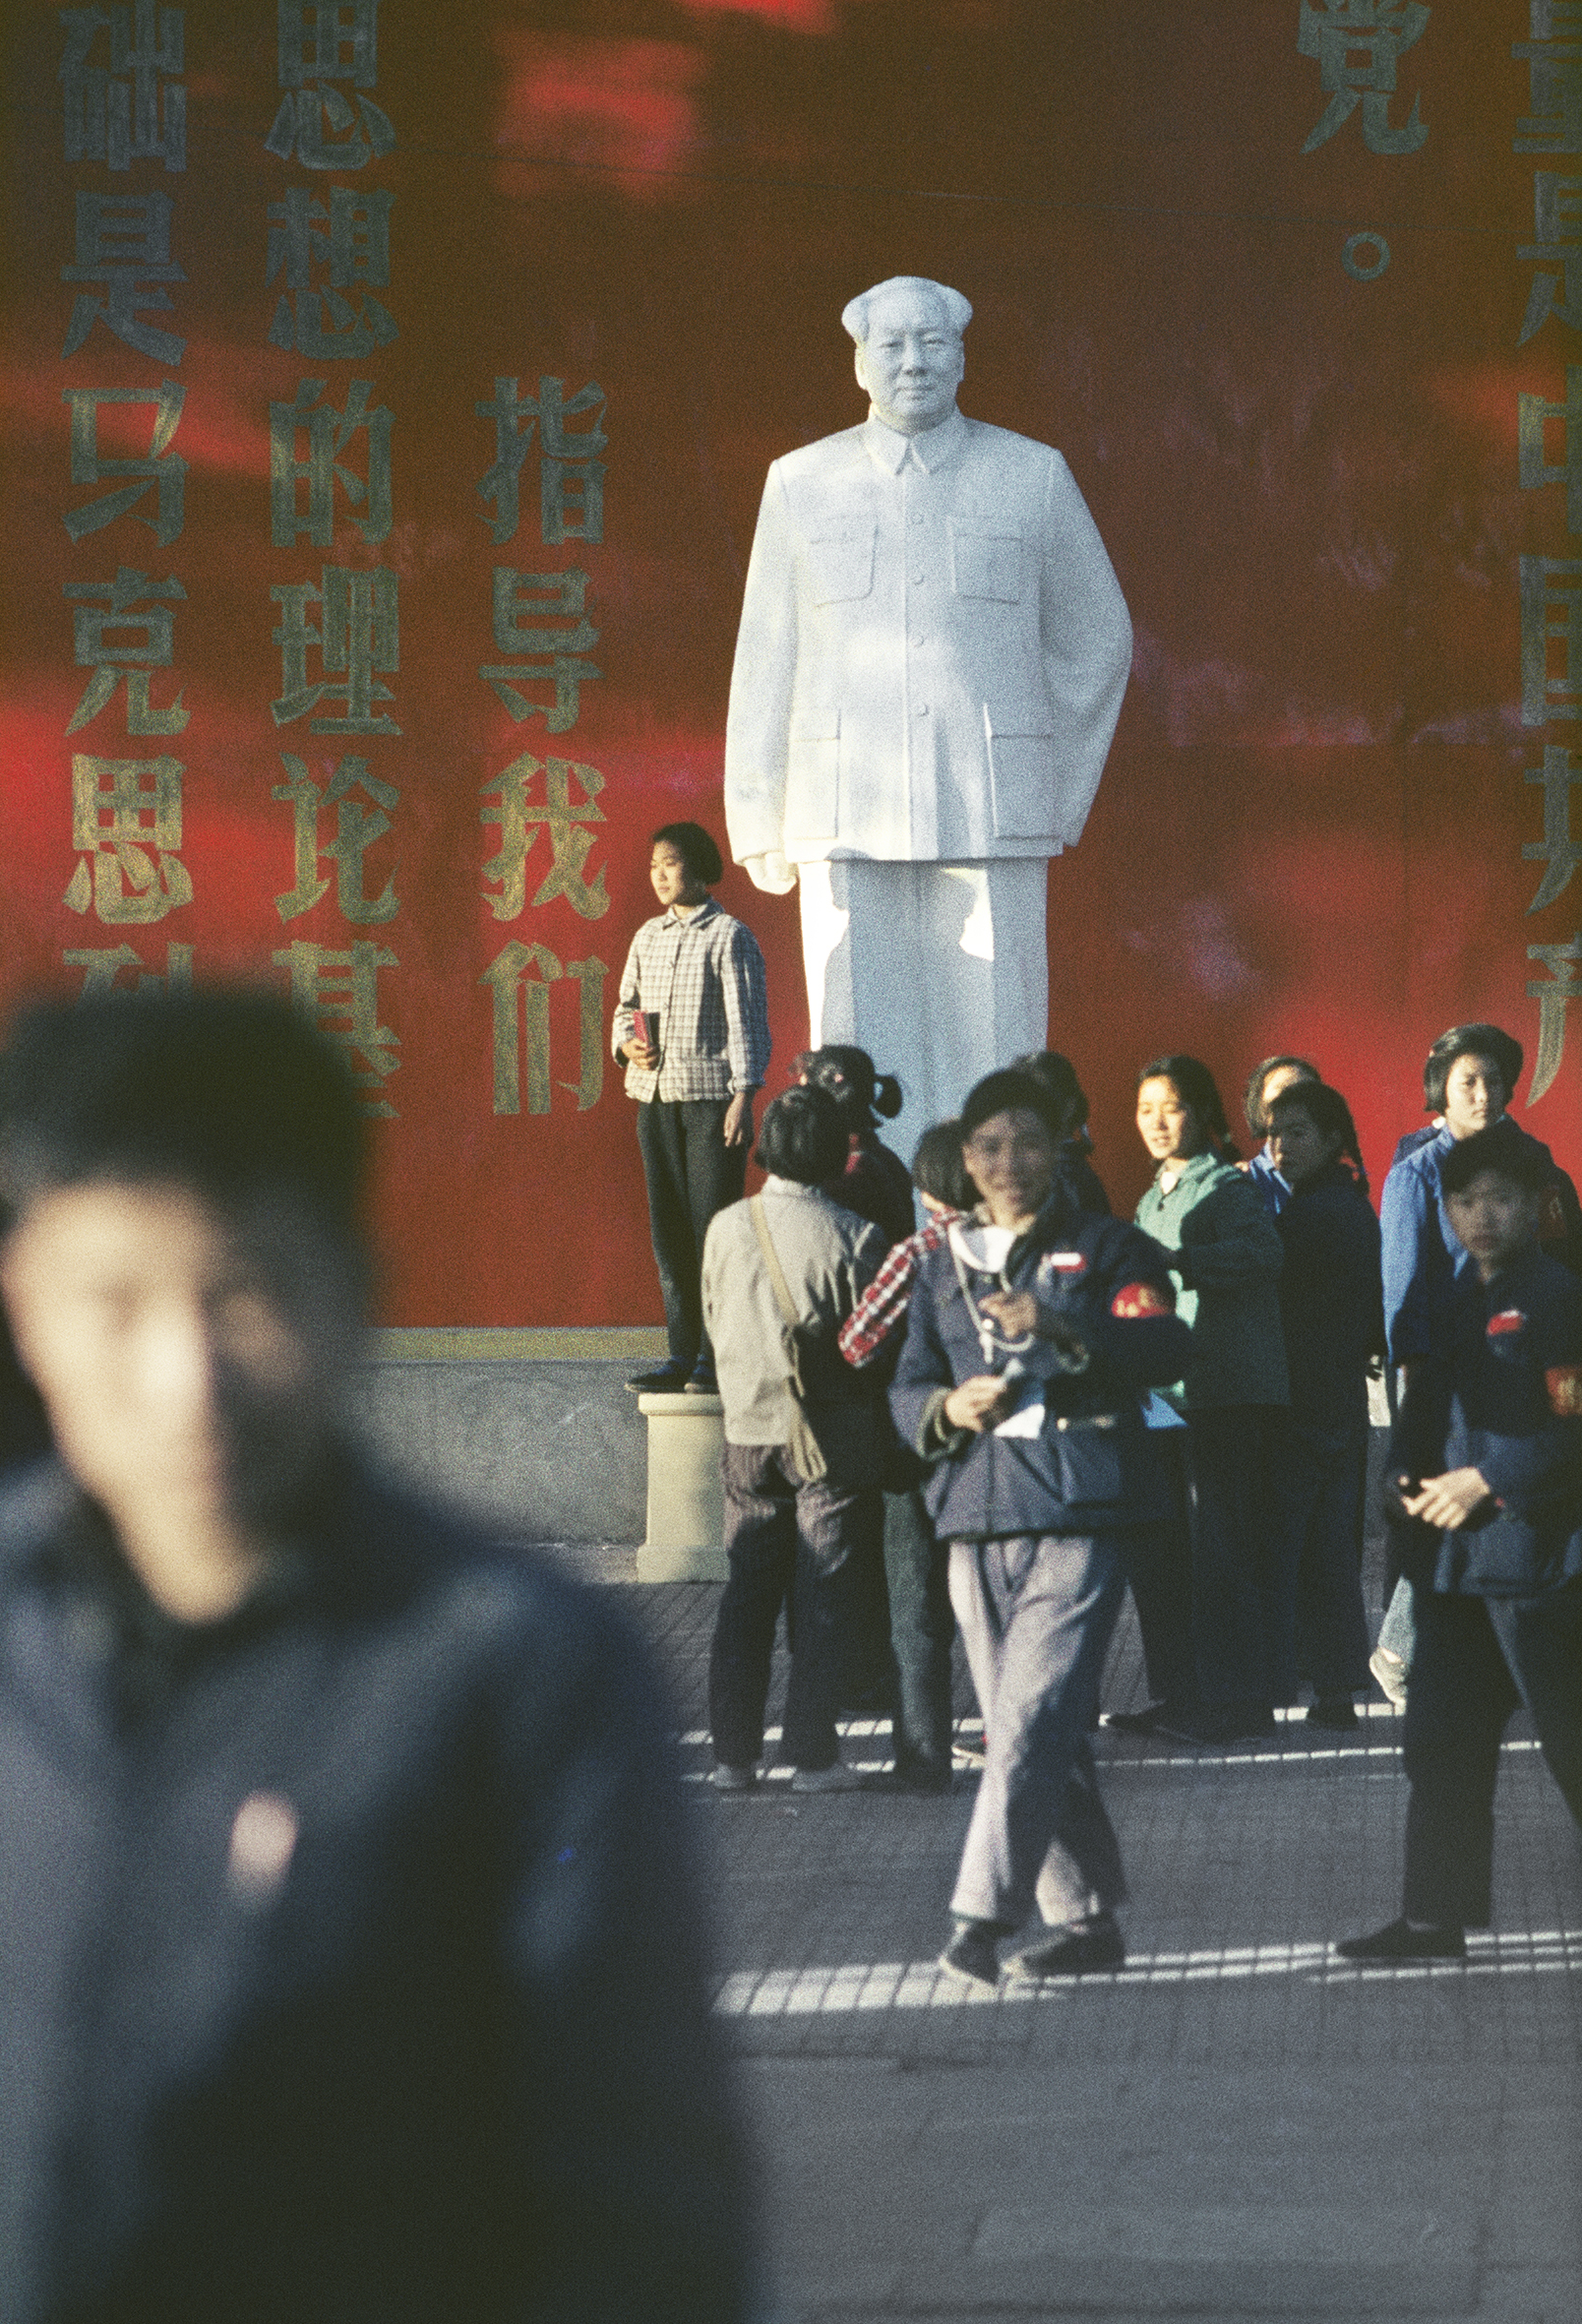 SOLANGE BRAND,  Untitled  ( S tudents Having Their Photograph Taken in Front of a Statue of Mao Zedong in Beihai Park),  Beijing, China,  November, 1966